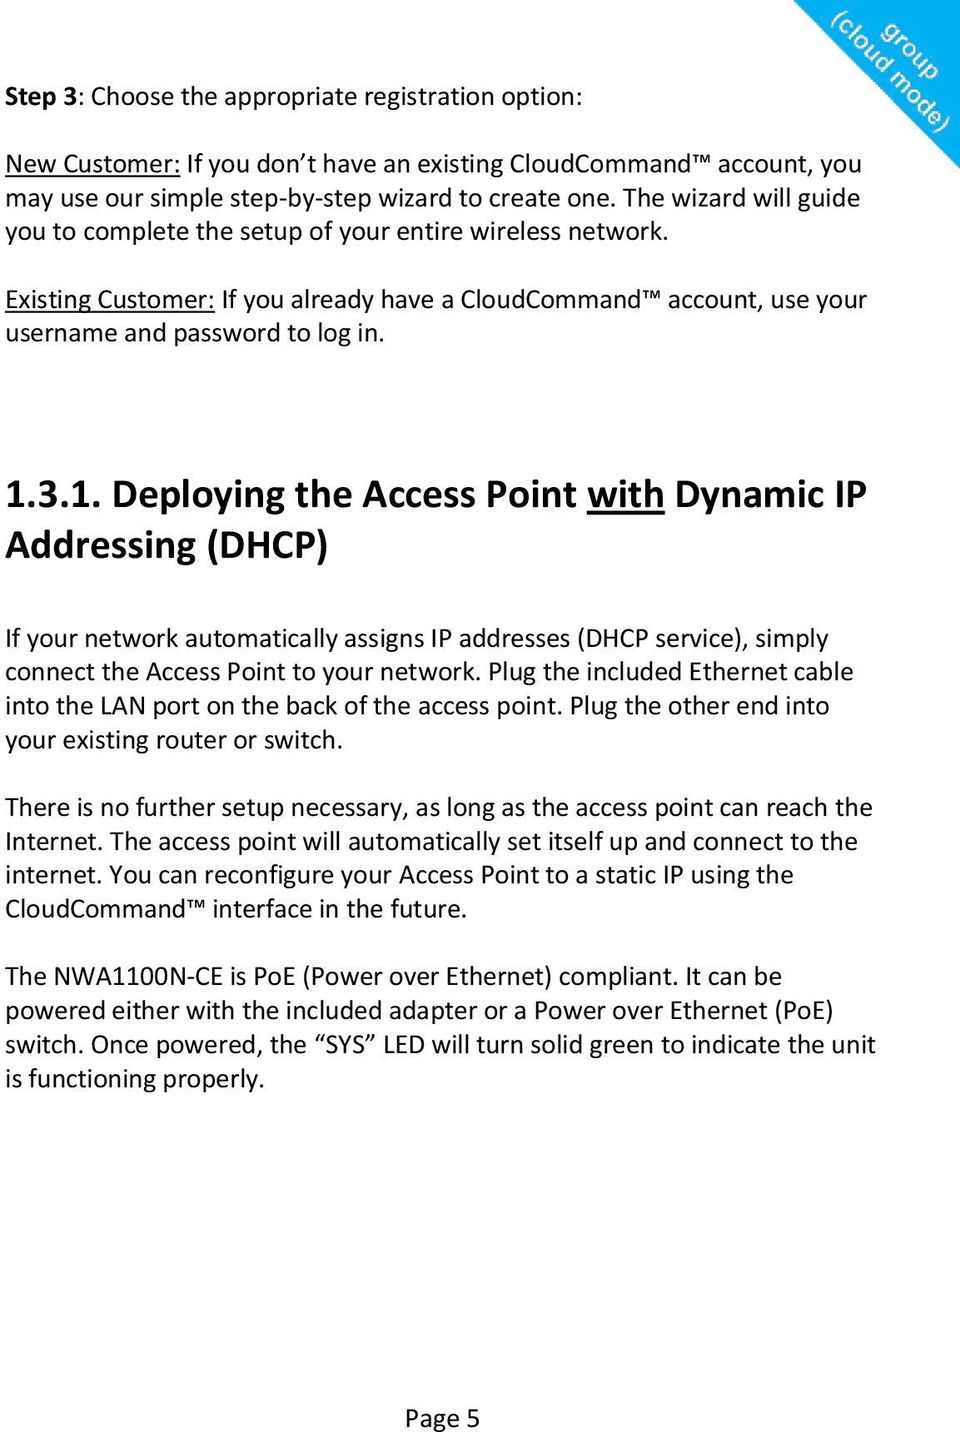 3.1. Deploying the Access Point with Dynamic IP Addressing (DHCP) If your network automatically assigns IP addresses (DHCP service), simply connect the Access Point to your network.